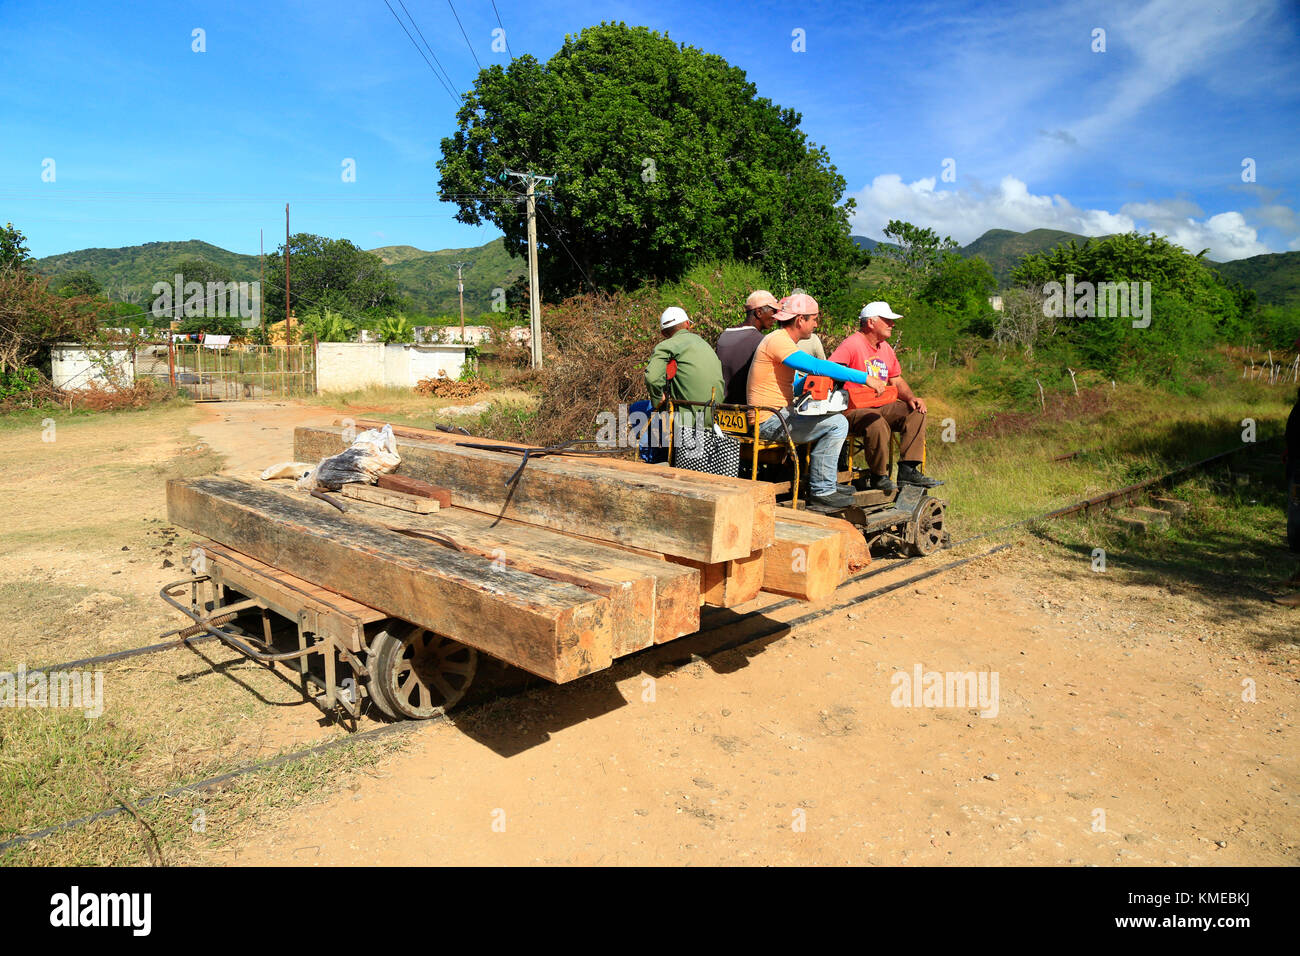 Cuban workers going out to install new railroad ties on train tracks from Trinidad to Valle de los Ingenios - Stock Image